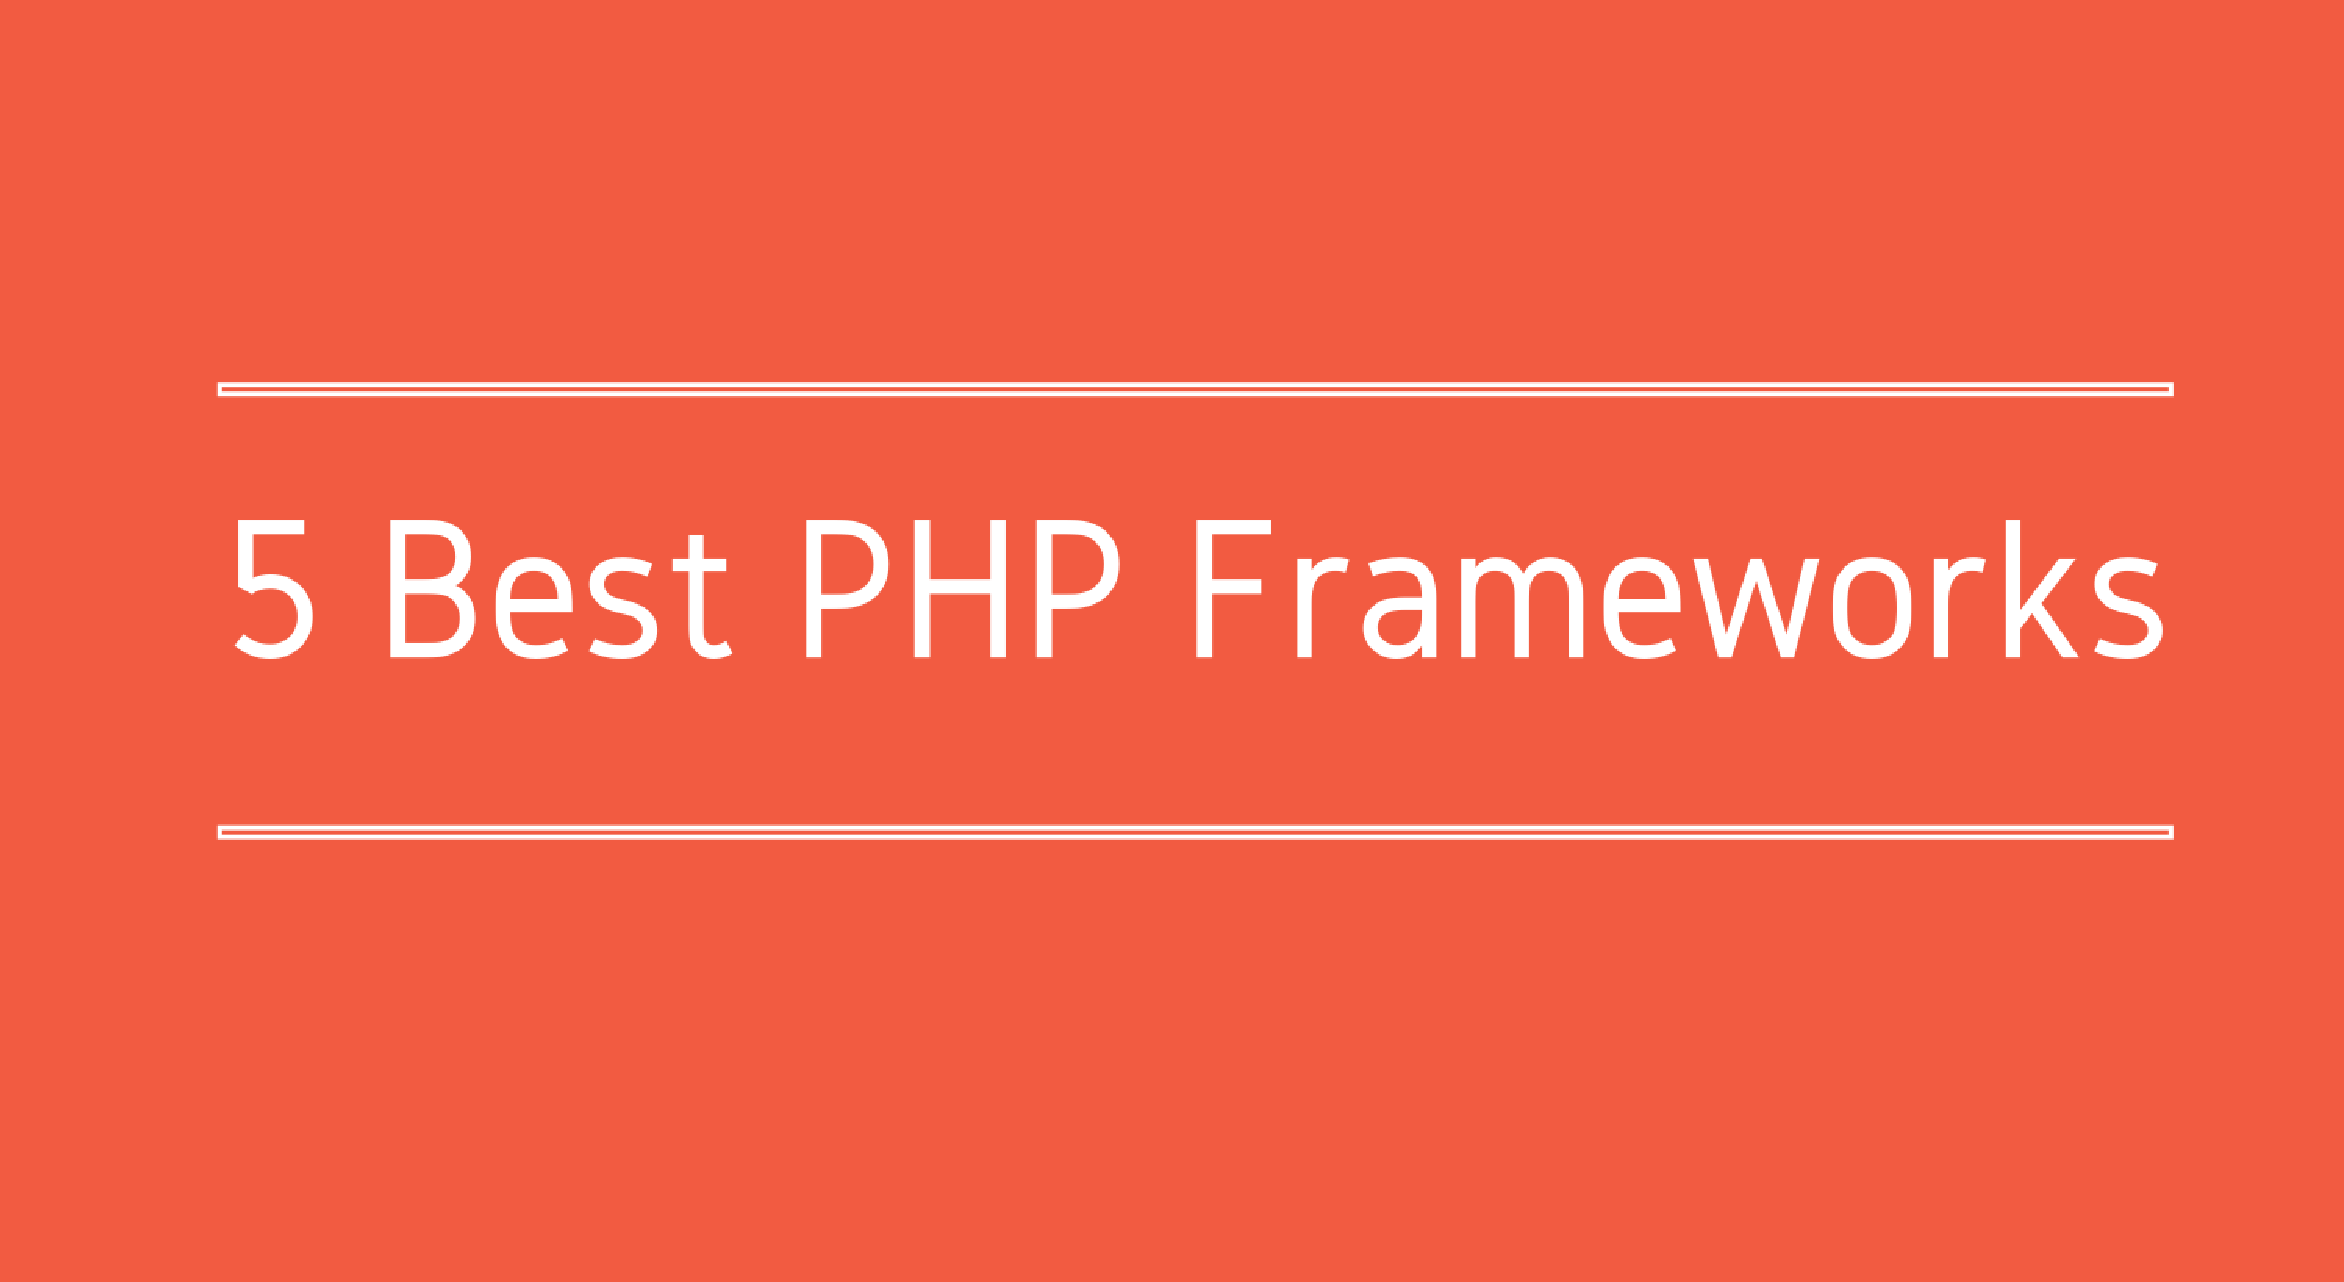 5 Best PHP Frameworks for Developers